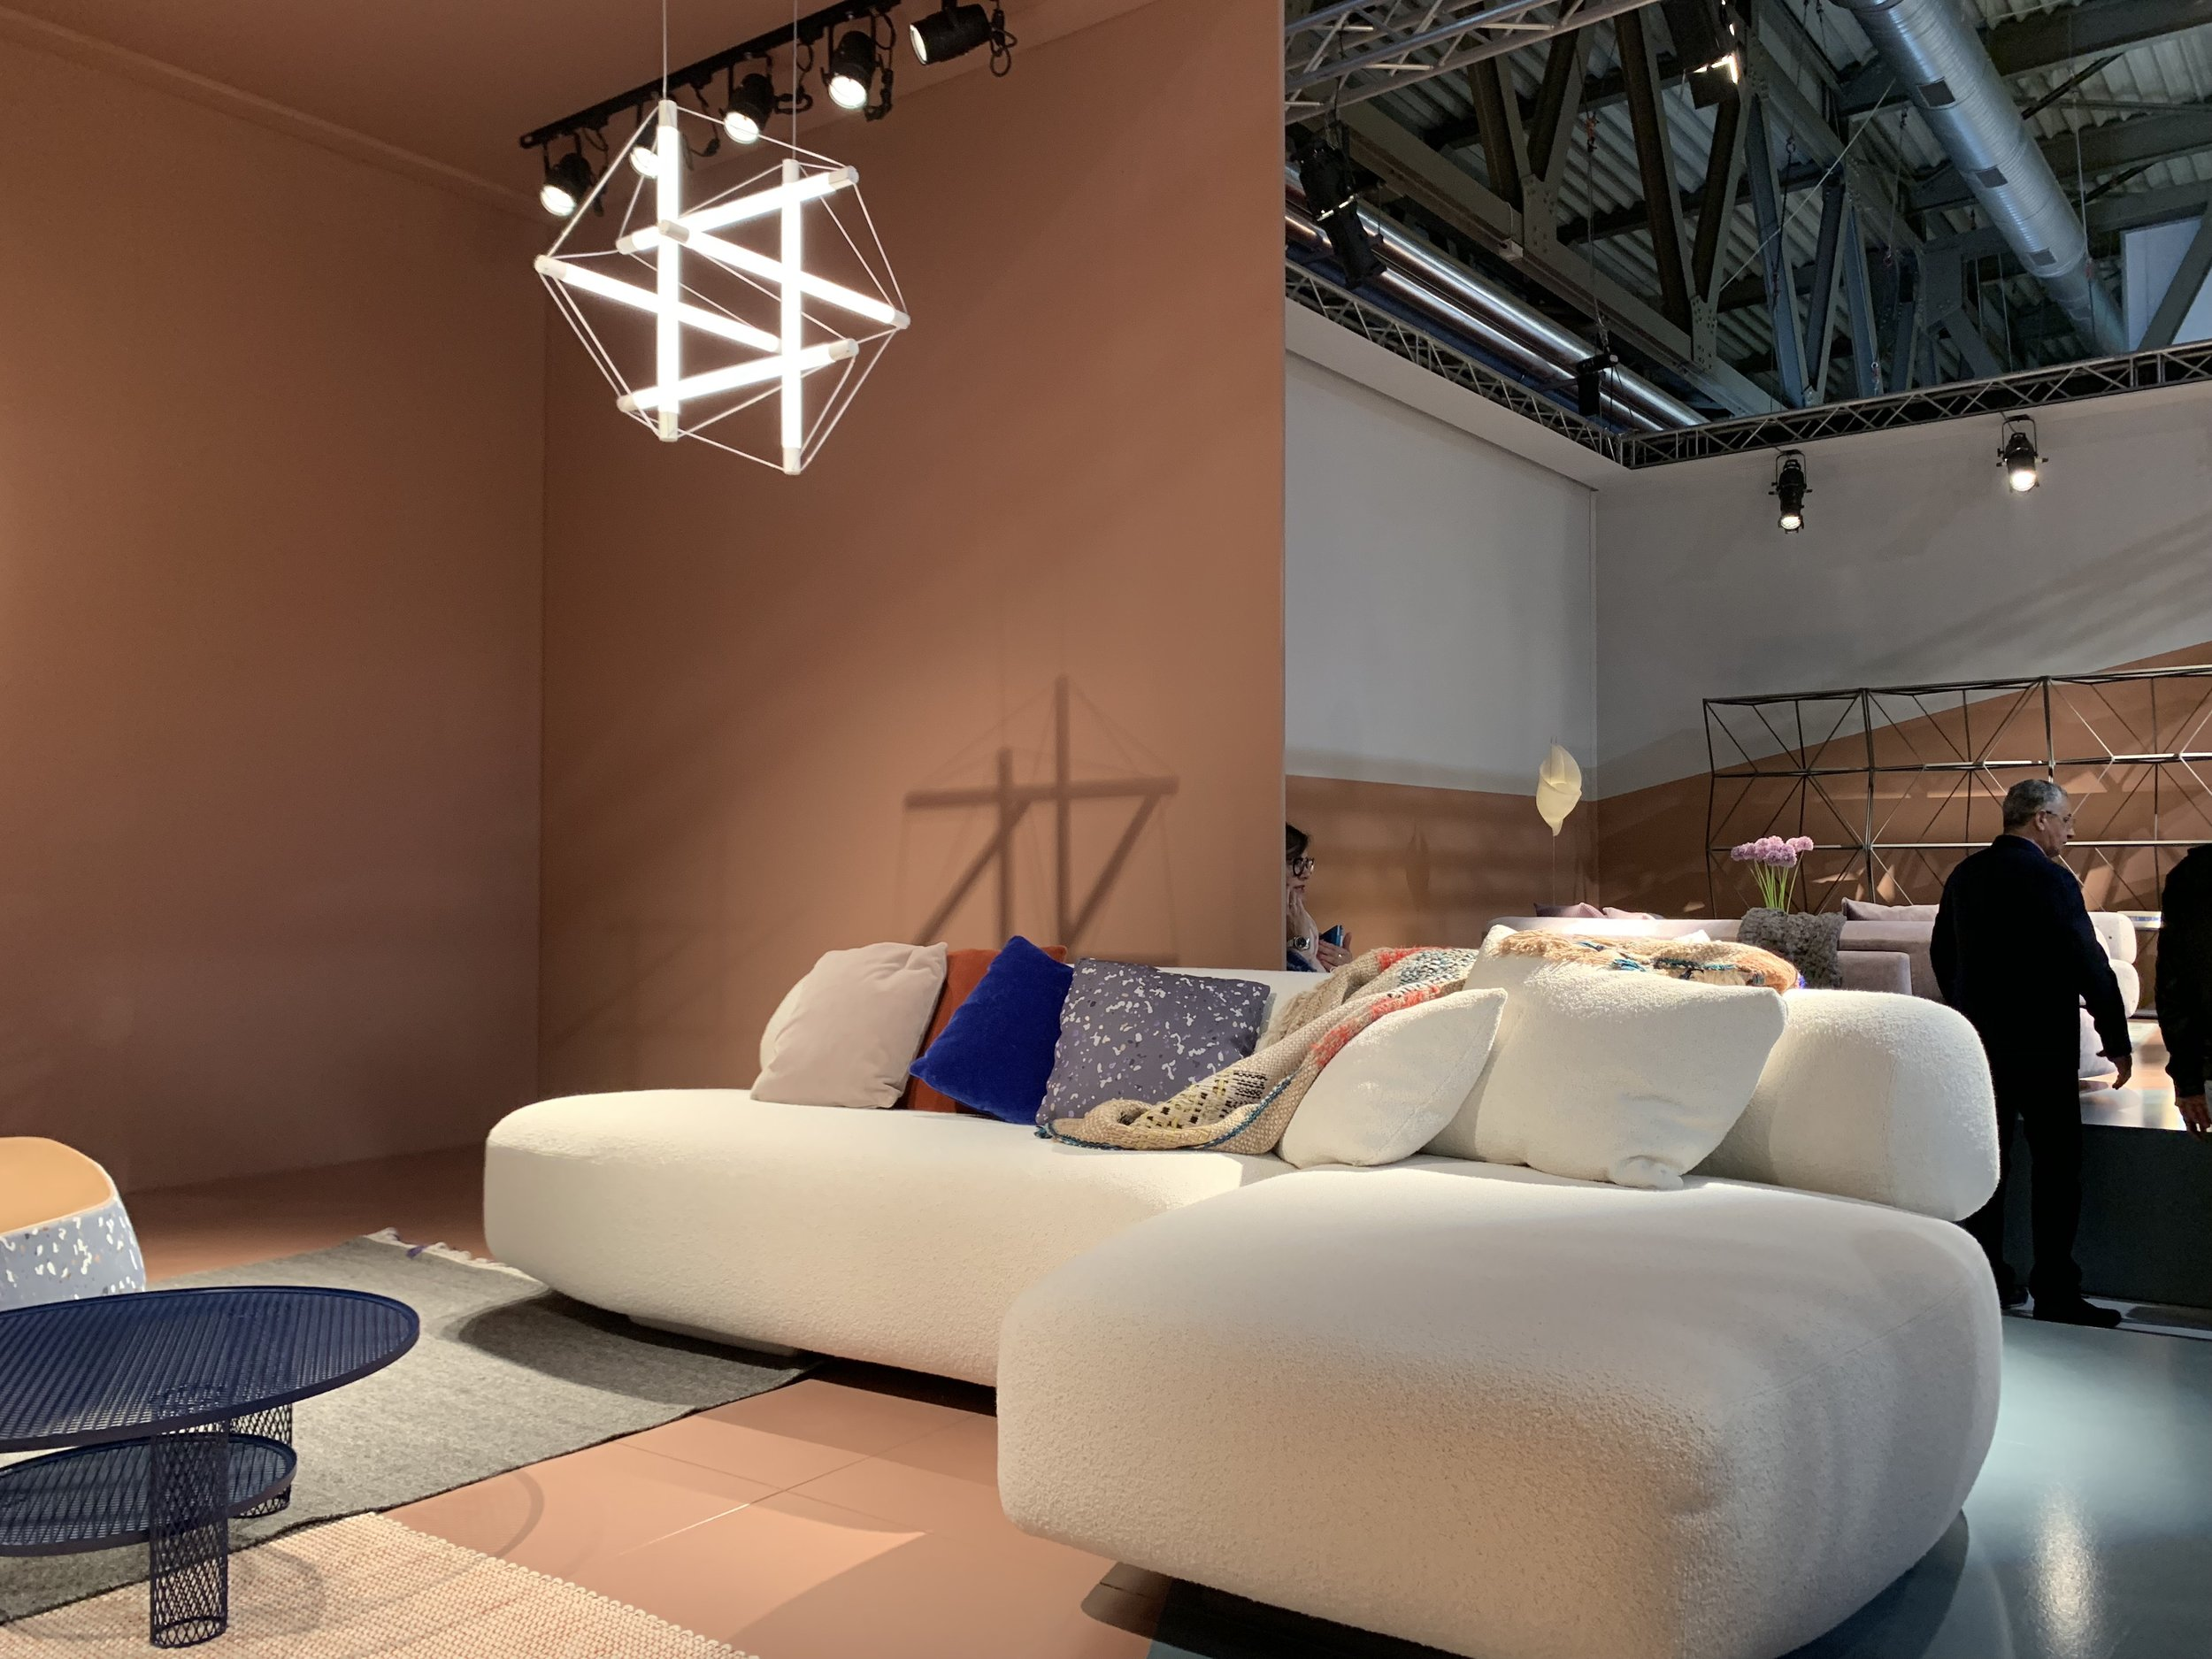 New Gogan sofa by  Patricia Urquiola  for Moroso - part of a modular collection inspired by Japanese stones